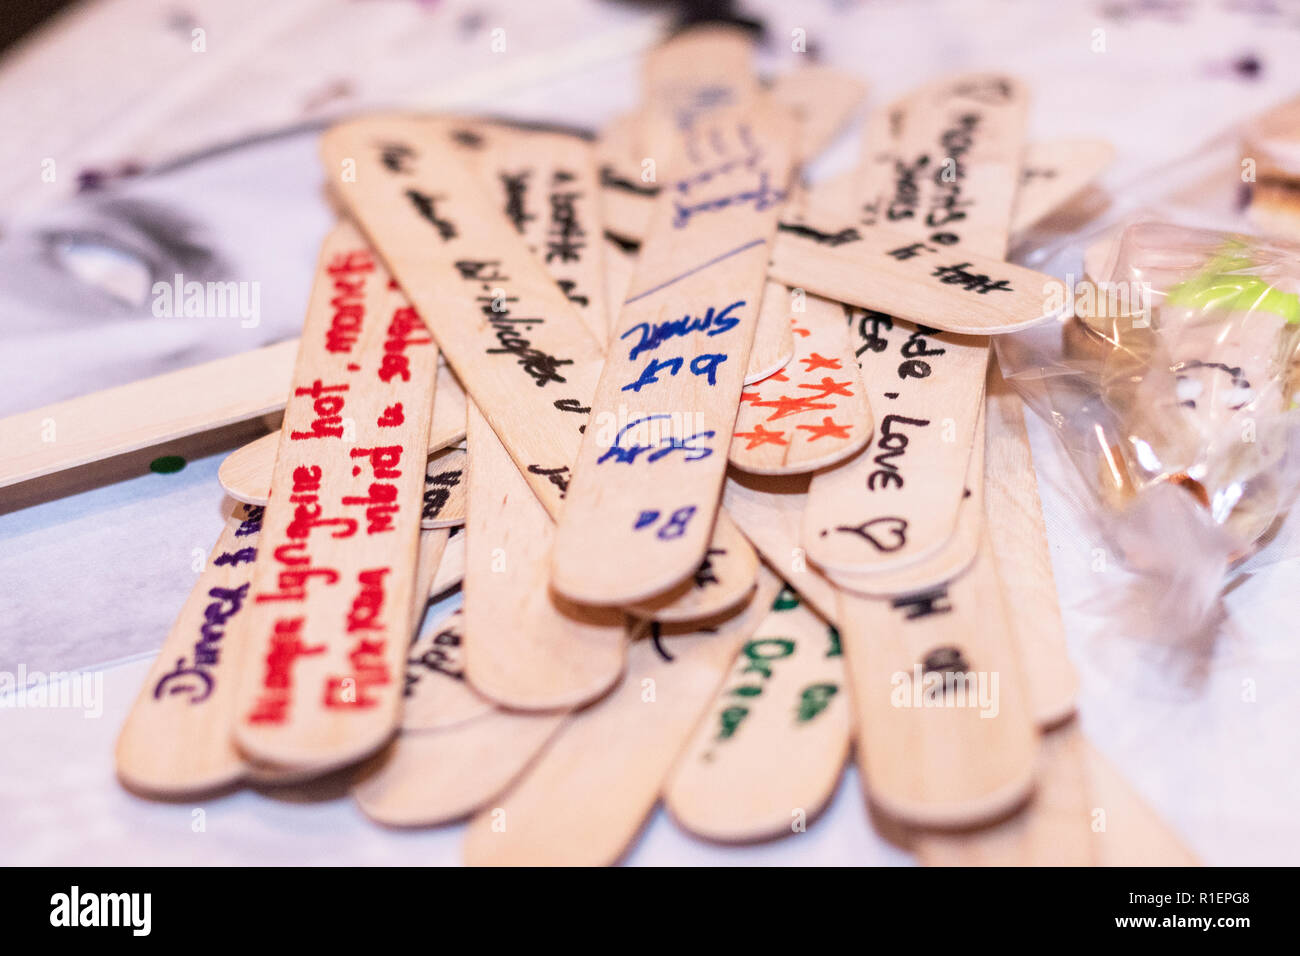 Date Night Jar Messages On Wood Text At A Hens Party For The Bride Horizontal Side View Shallow Depth Of Field Ideas Stock Photo Alamy